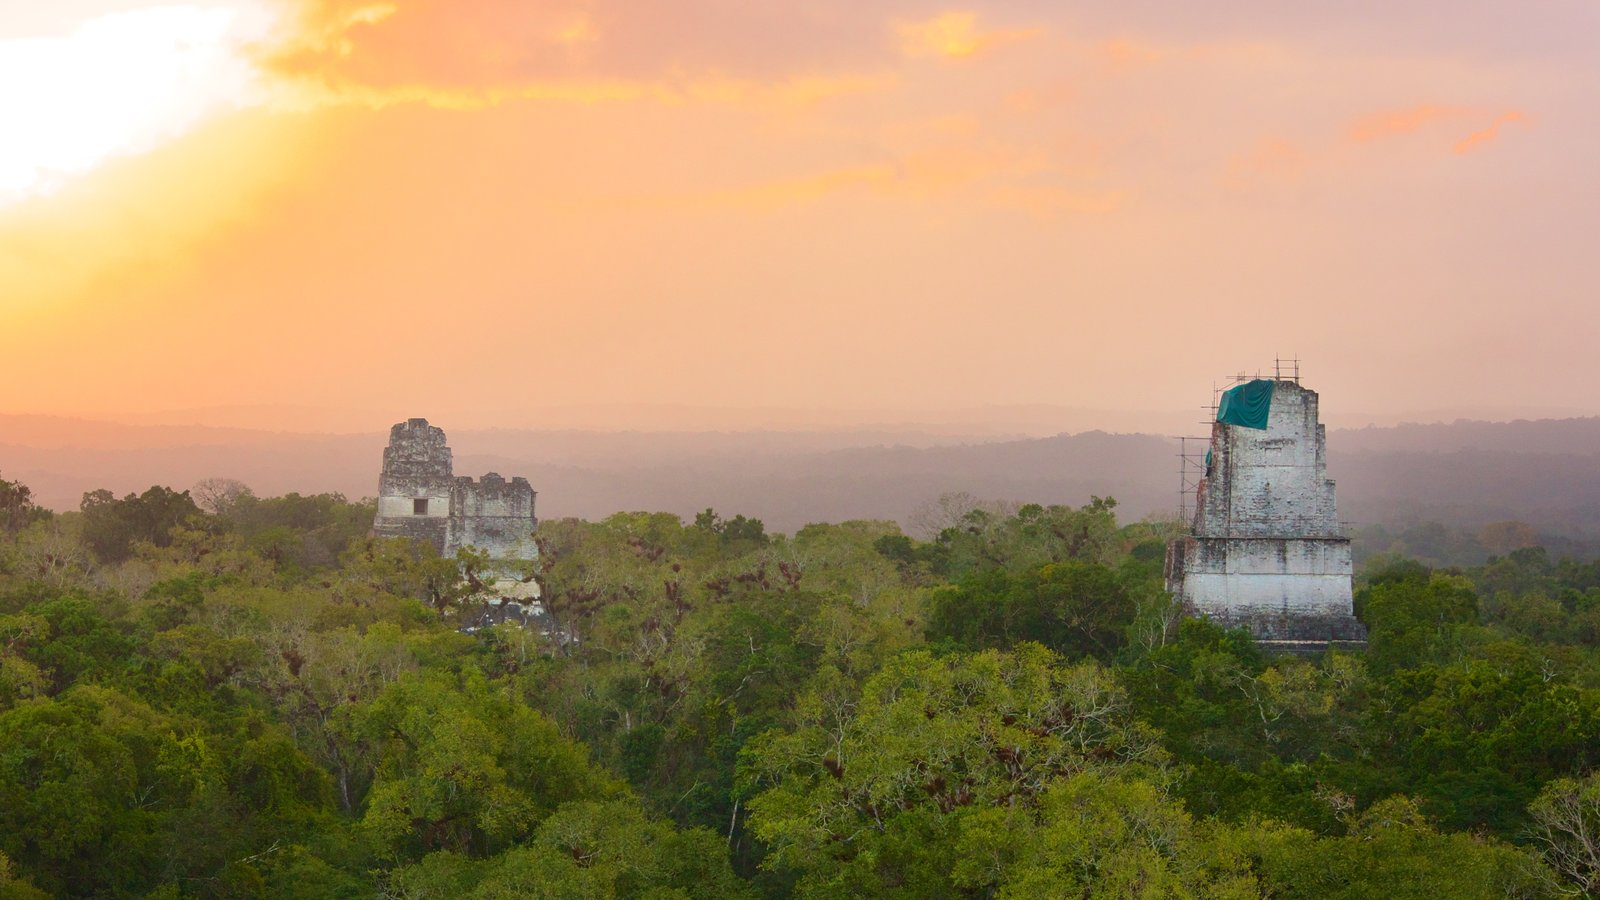 Tikal featuring tranquil scenes, forest scenes and a sunset